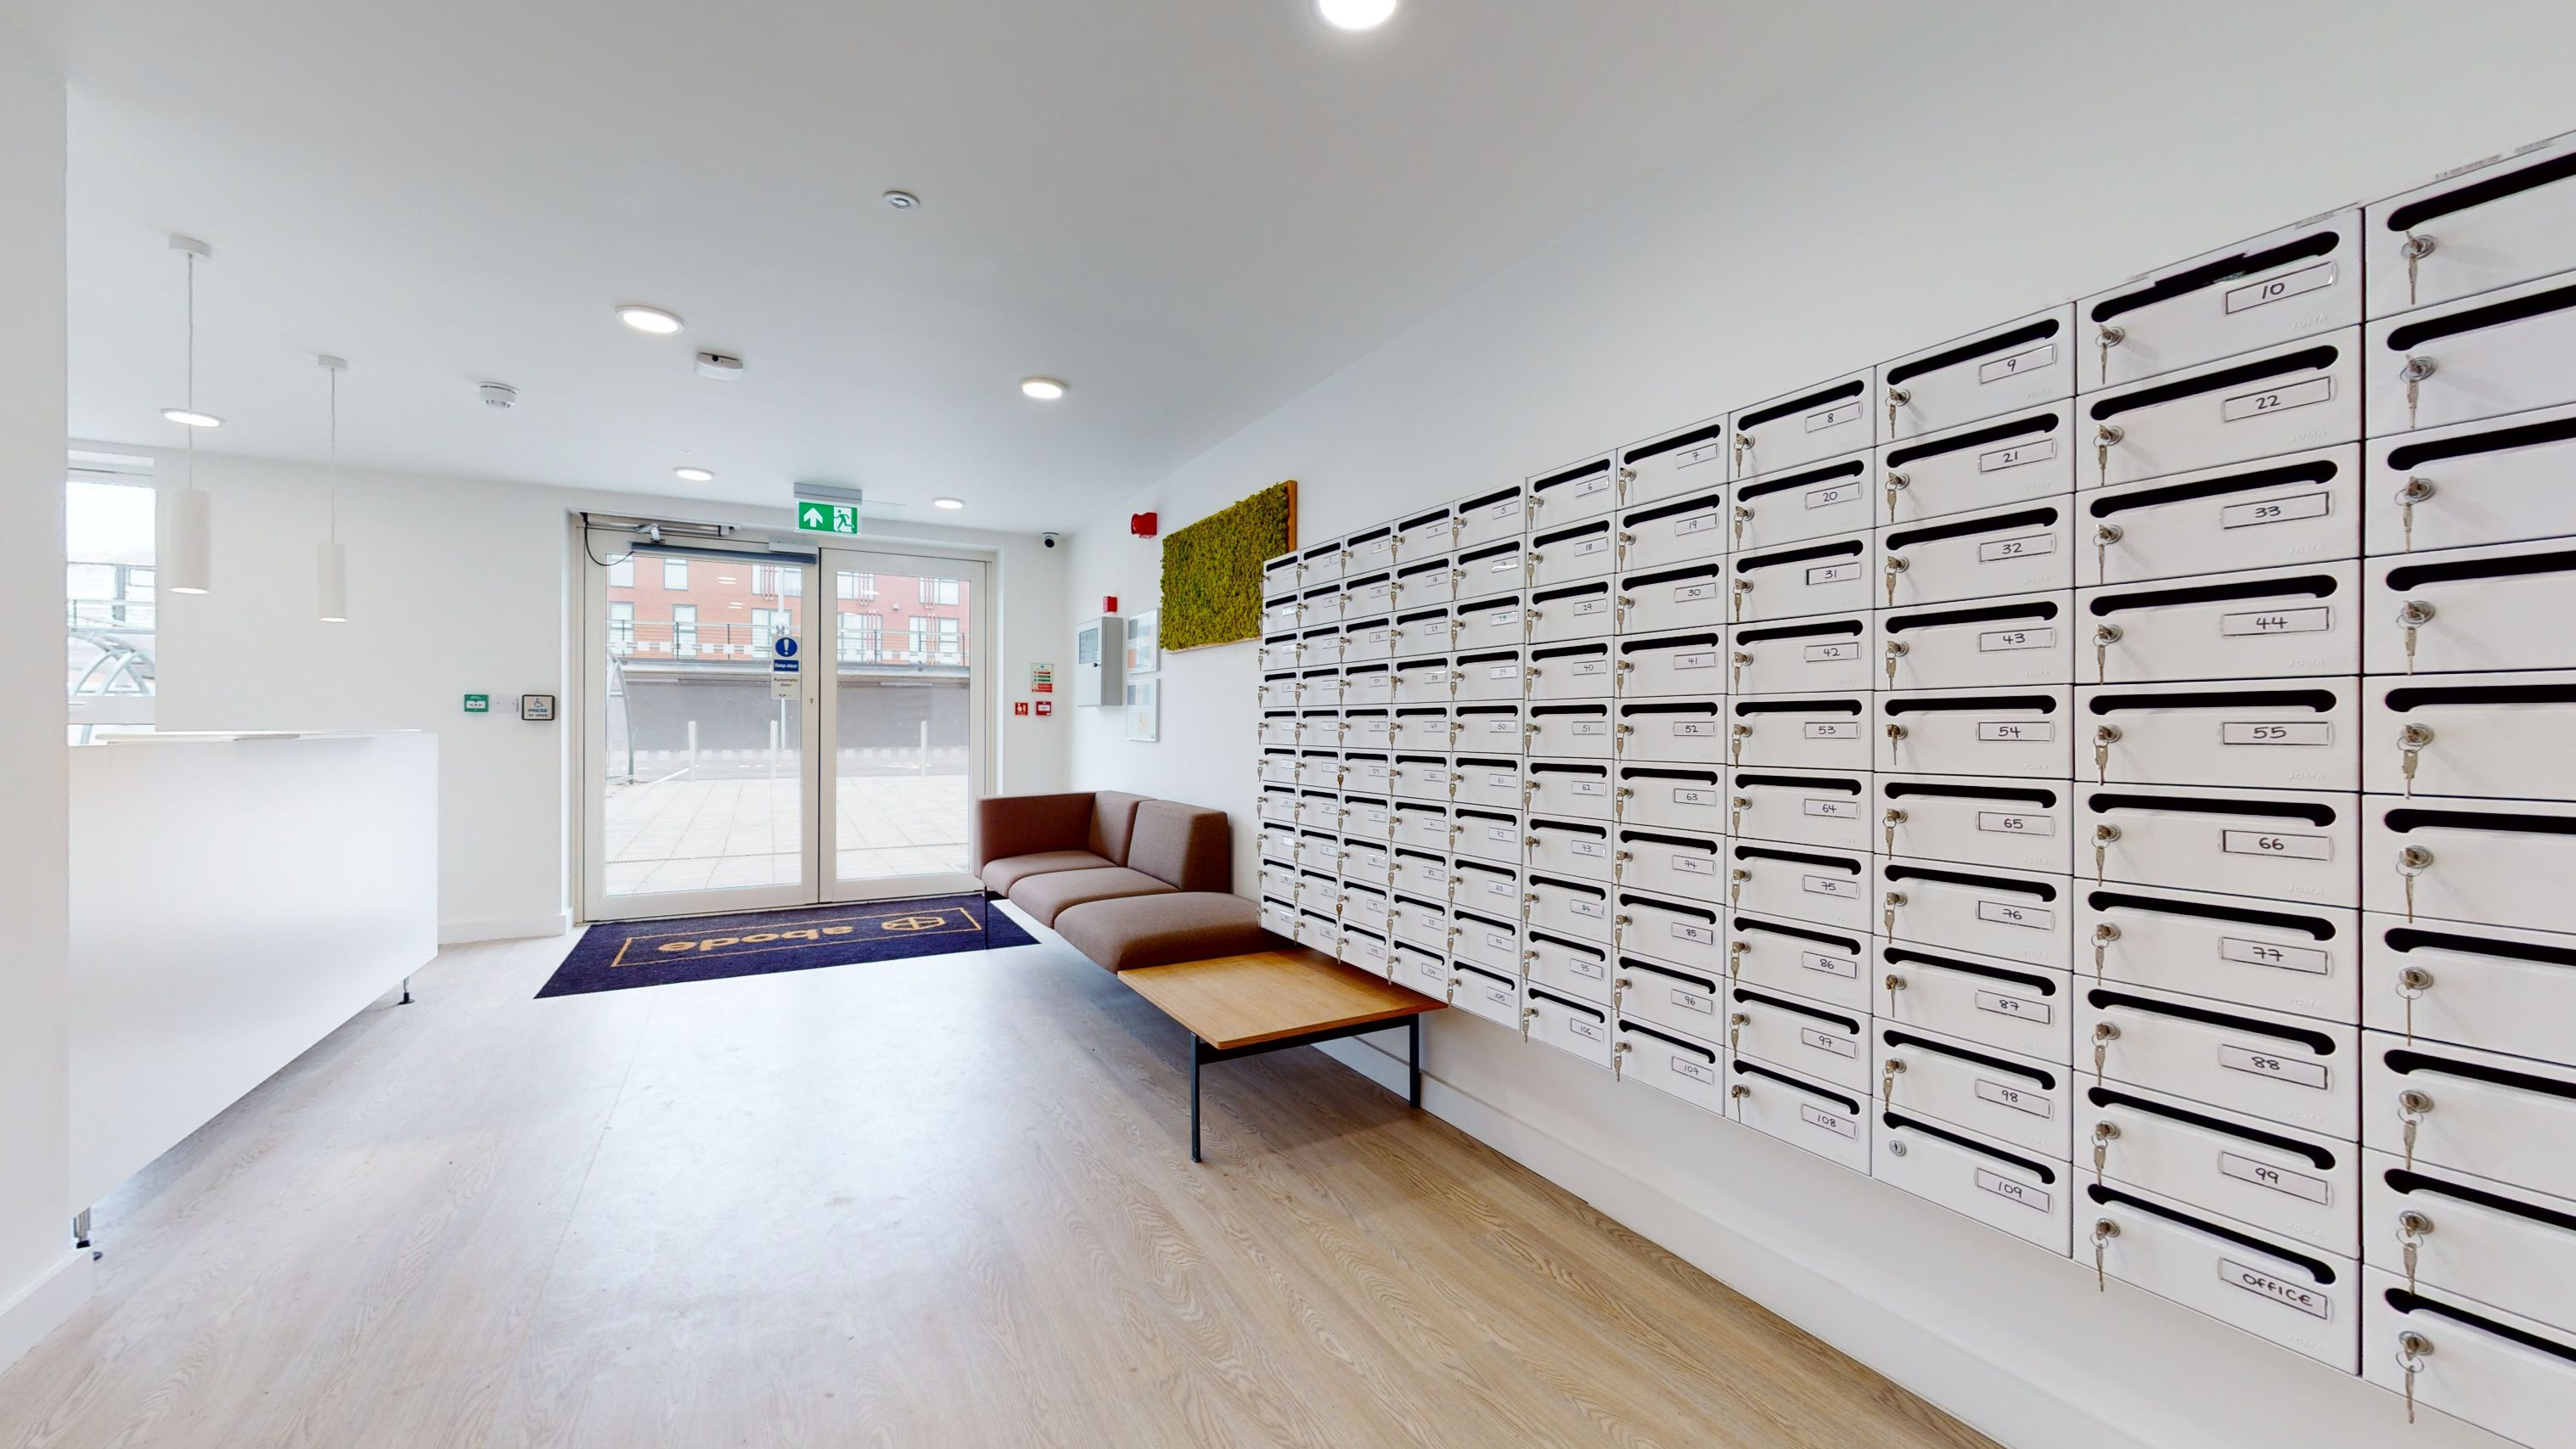 mail storage One London Road Newcastle under lyme student accommodation